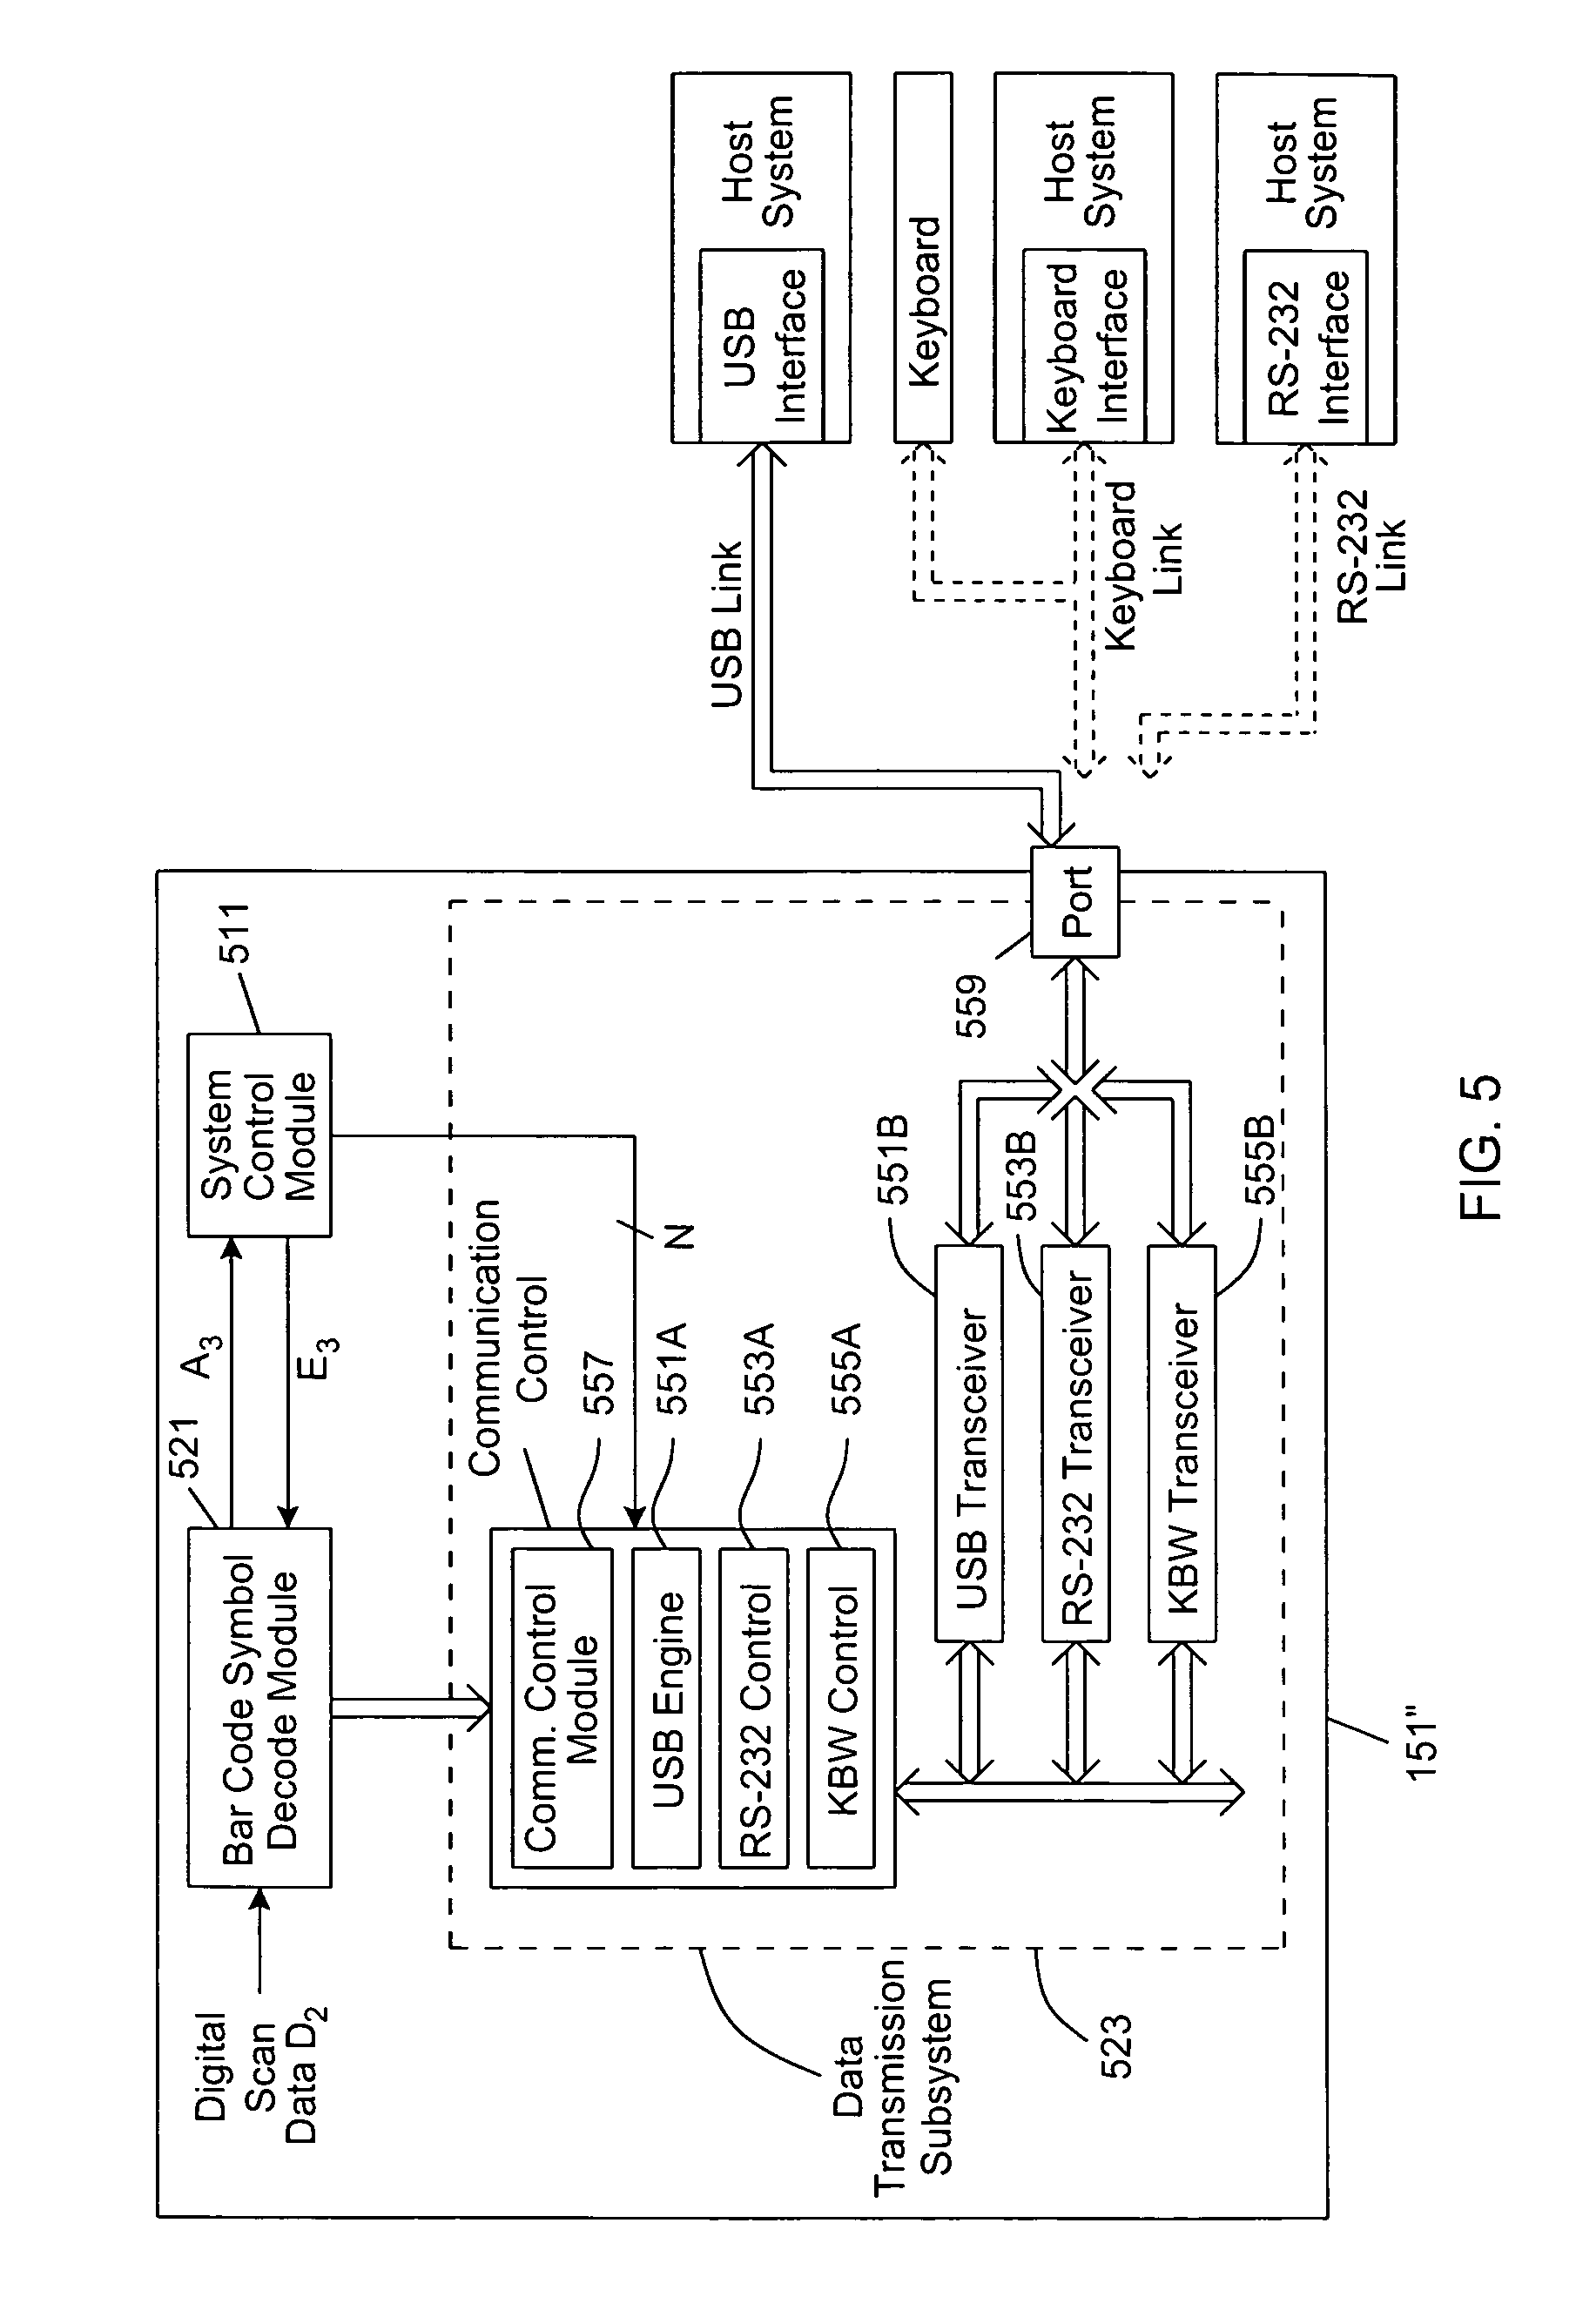 Patent Us7686226 Digital Imaging Based System Having Intelligent Rs232 Transceiver Circuit Collection Drawing